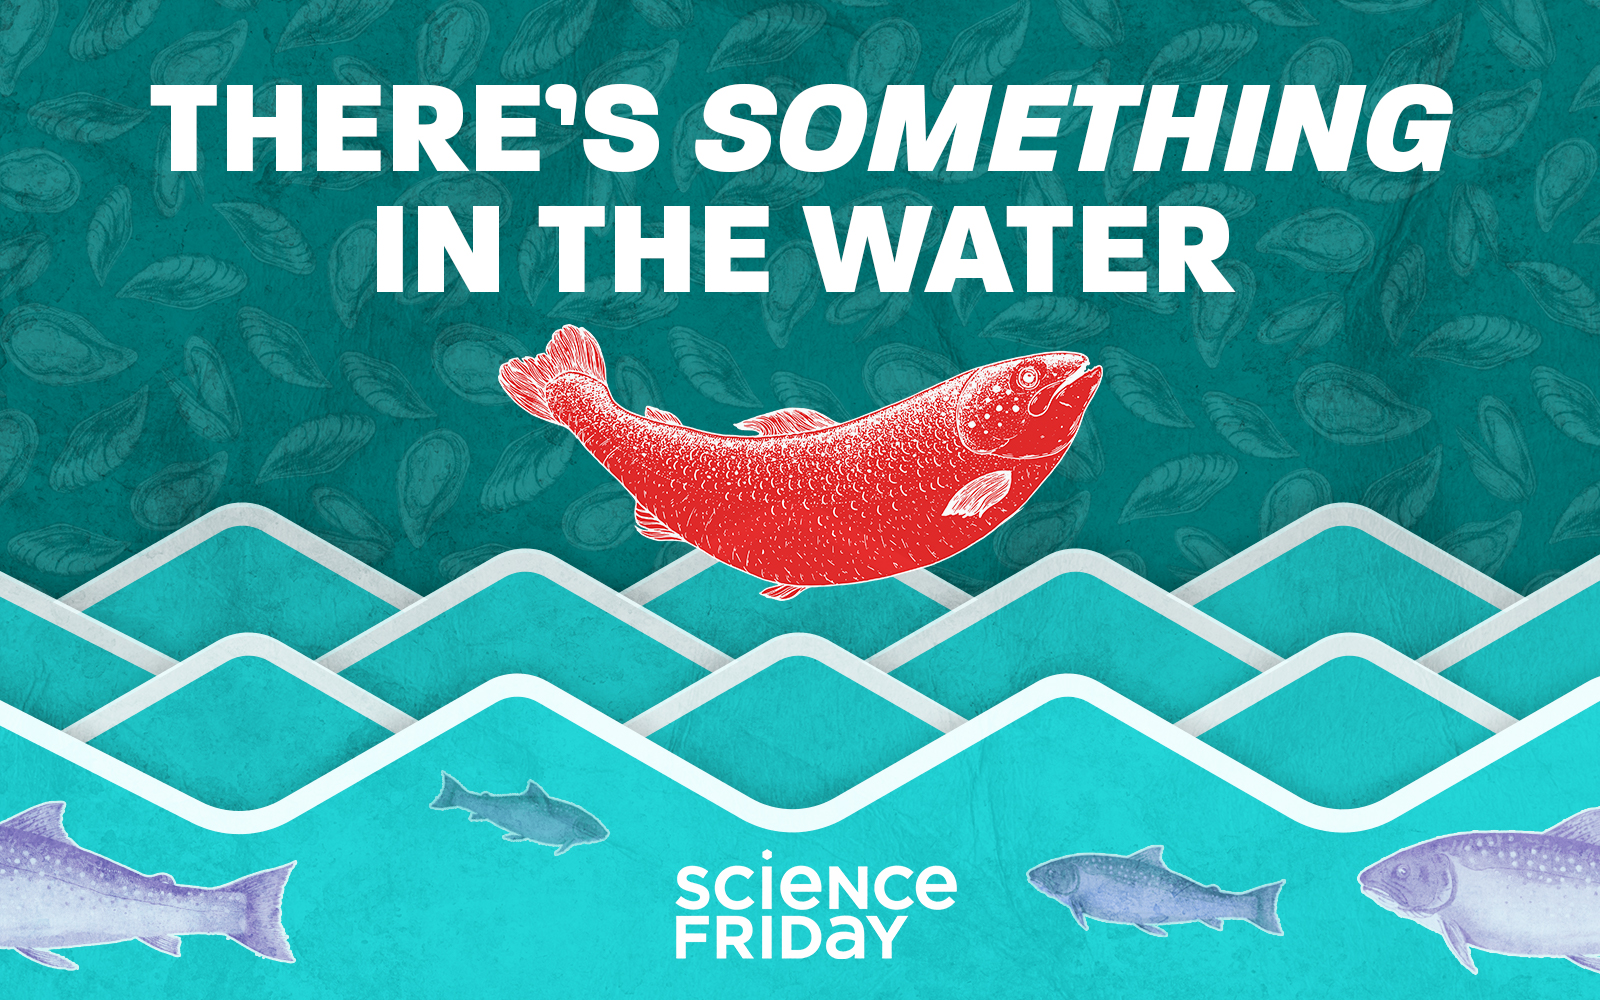 illustrated scene of fish in water and mussels in the background. in the center is a bright red salmon, with the words 'there's something in the water' and the logo reading 'science friday'